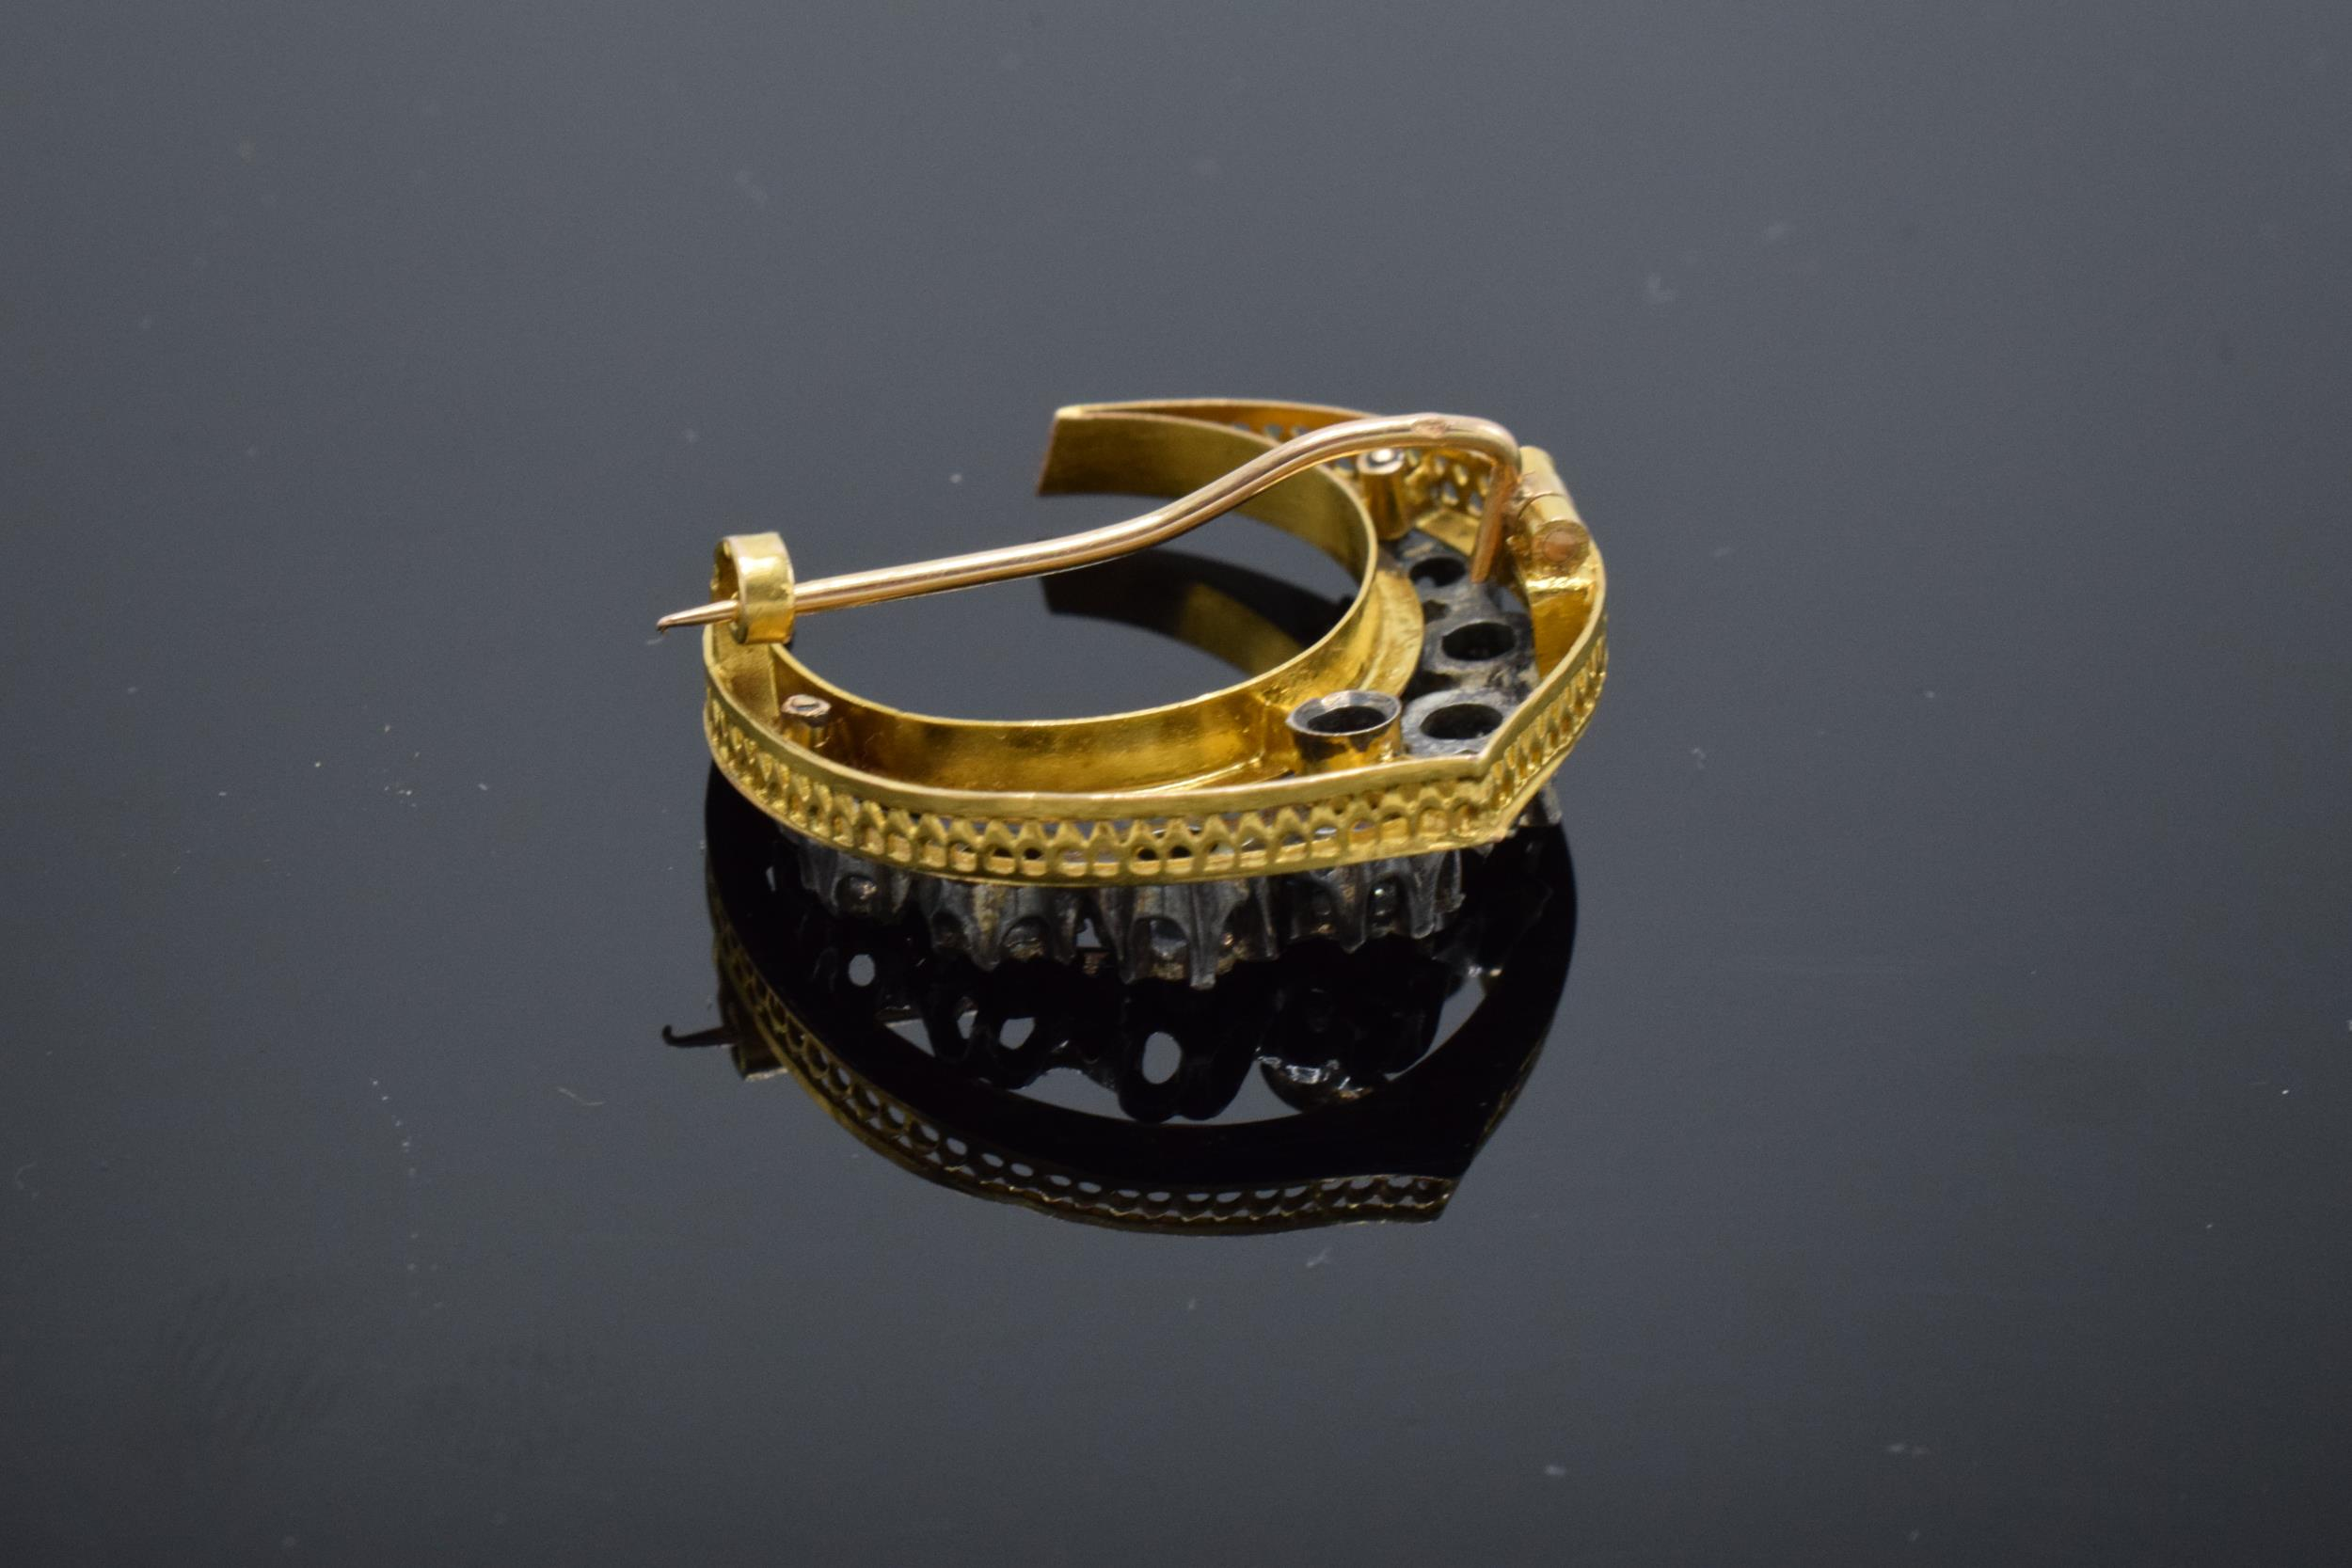 French 18ct gold and diamond chip crescent / half moon brooch. Total weight 4.9 grams. - Image 3 of 5